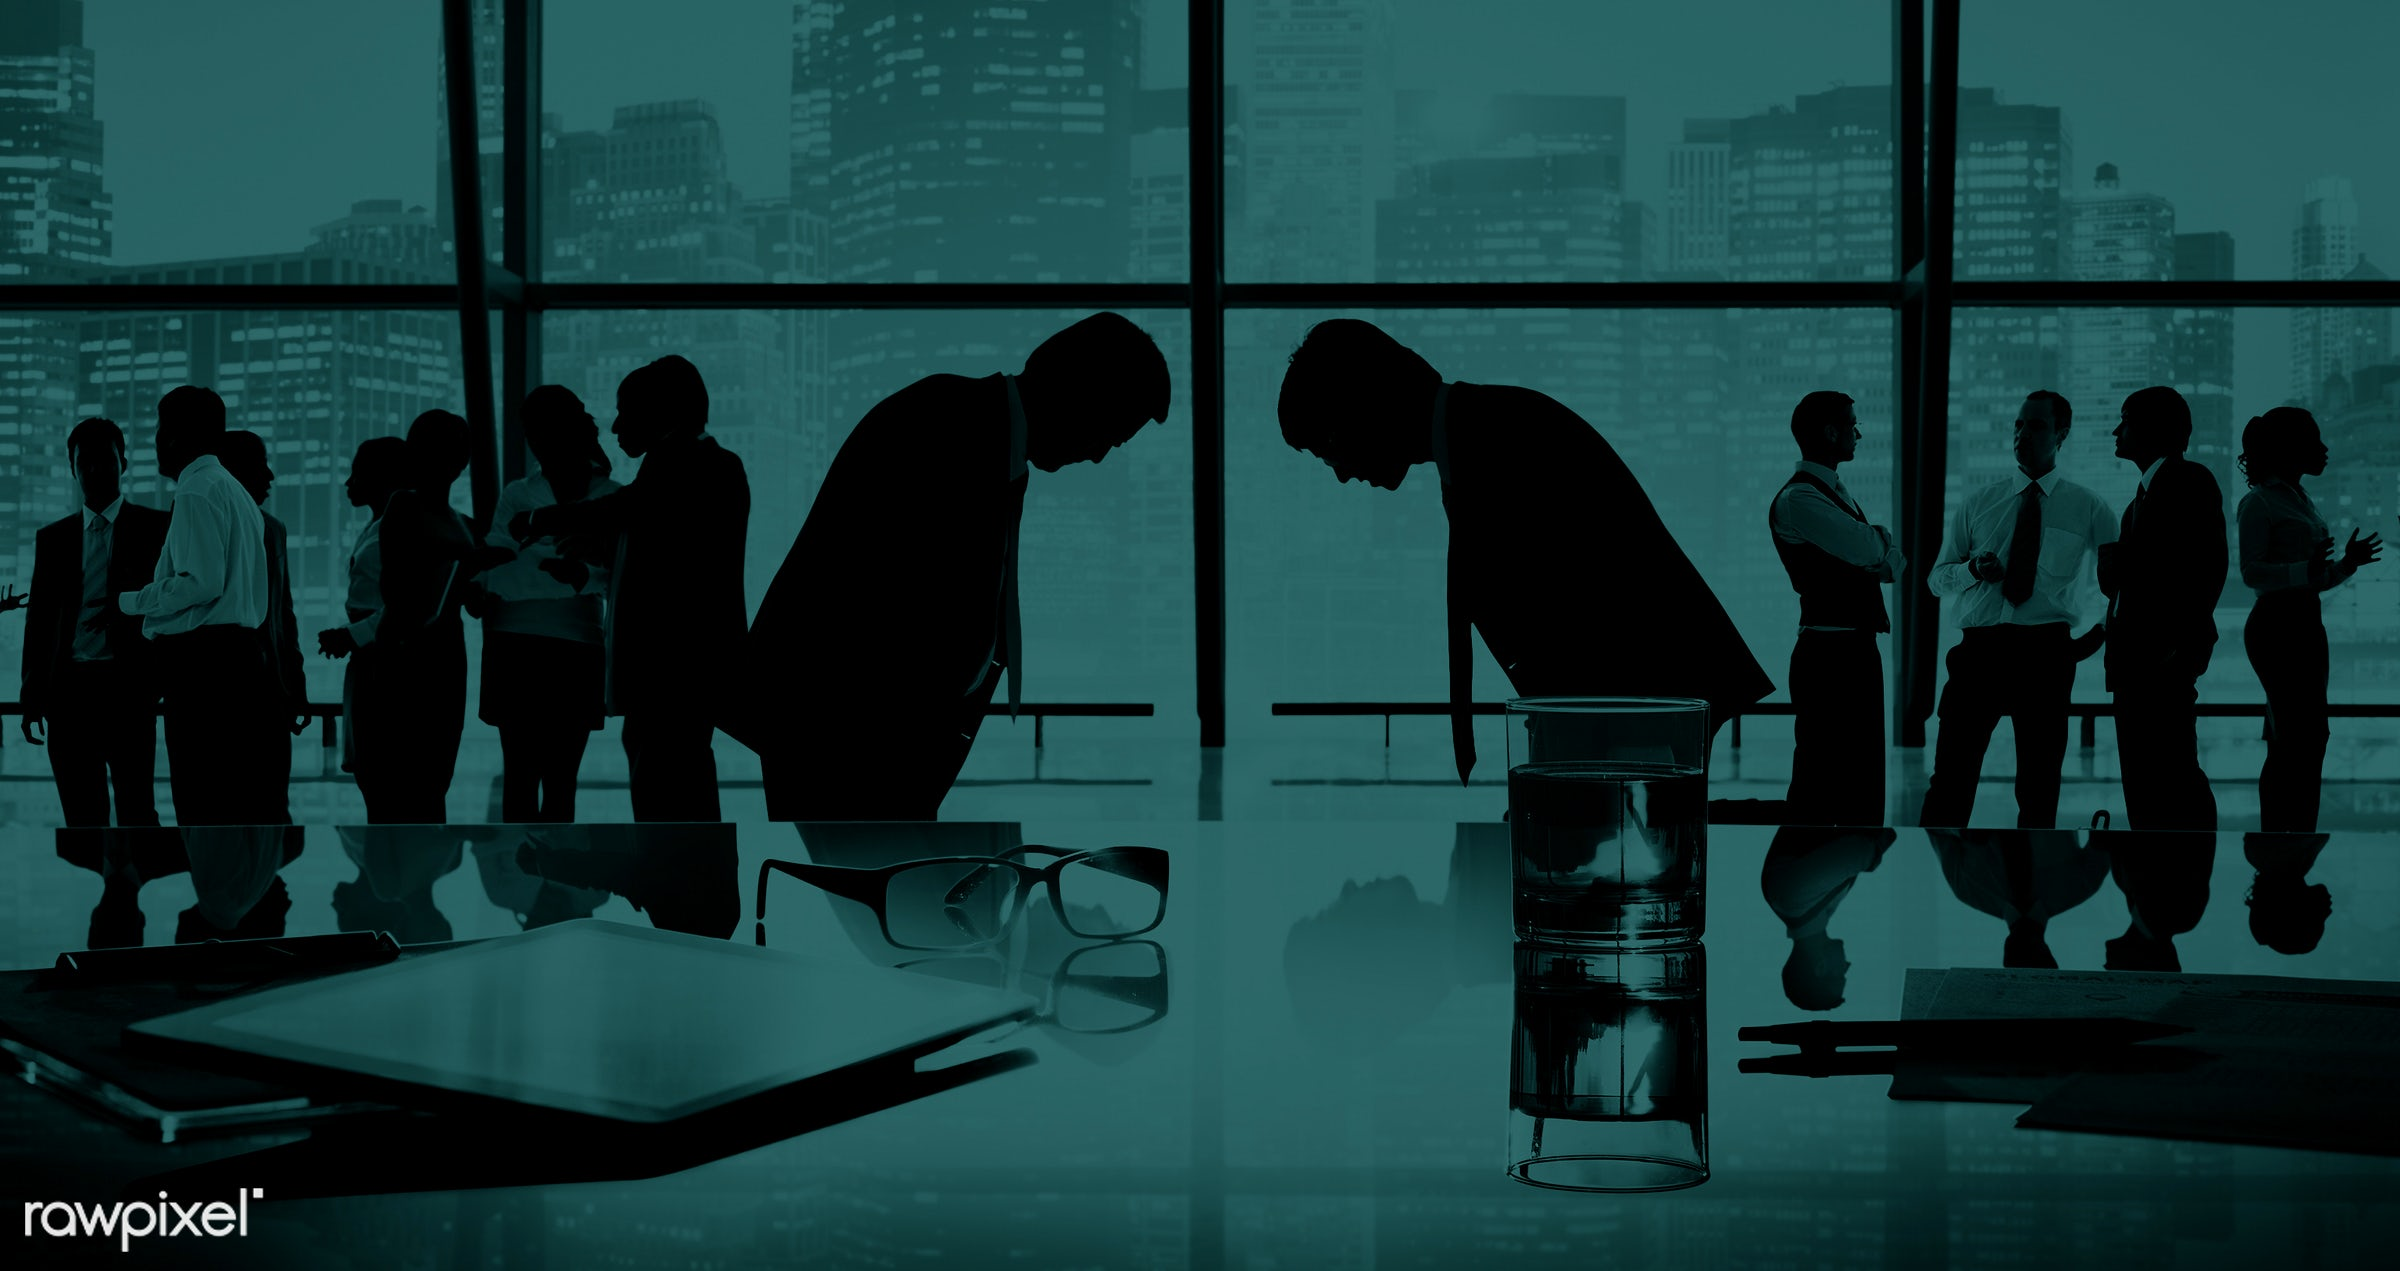 asian ethnicity, boardroom, bowing, brainstorming, building, business, business people, businessmen, businesswomen, city,...